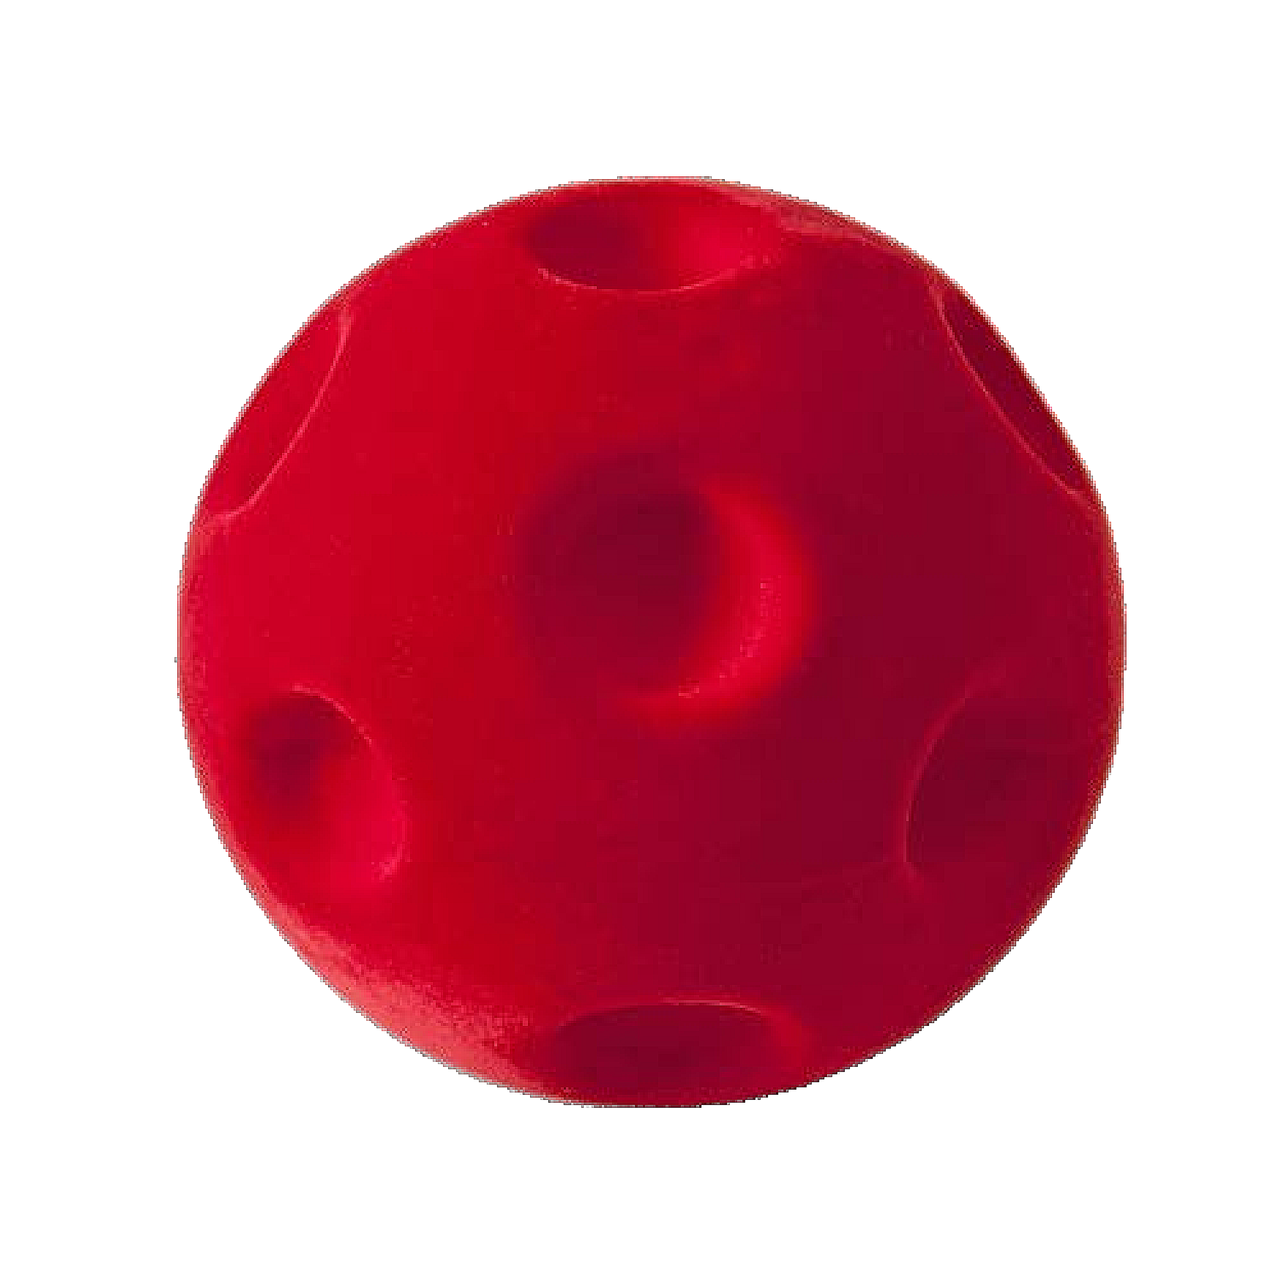 Red Crater Ball